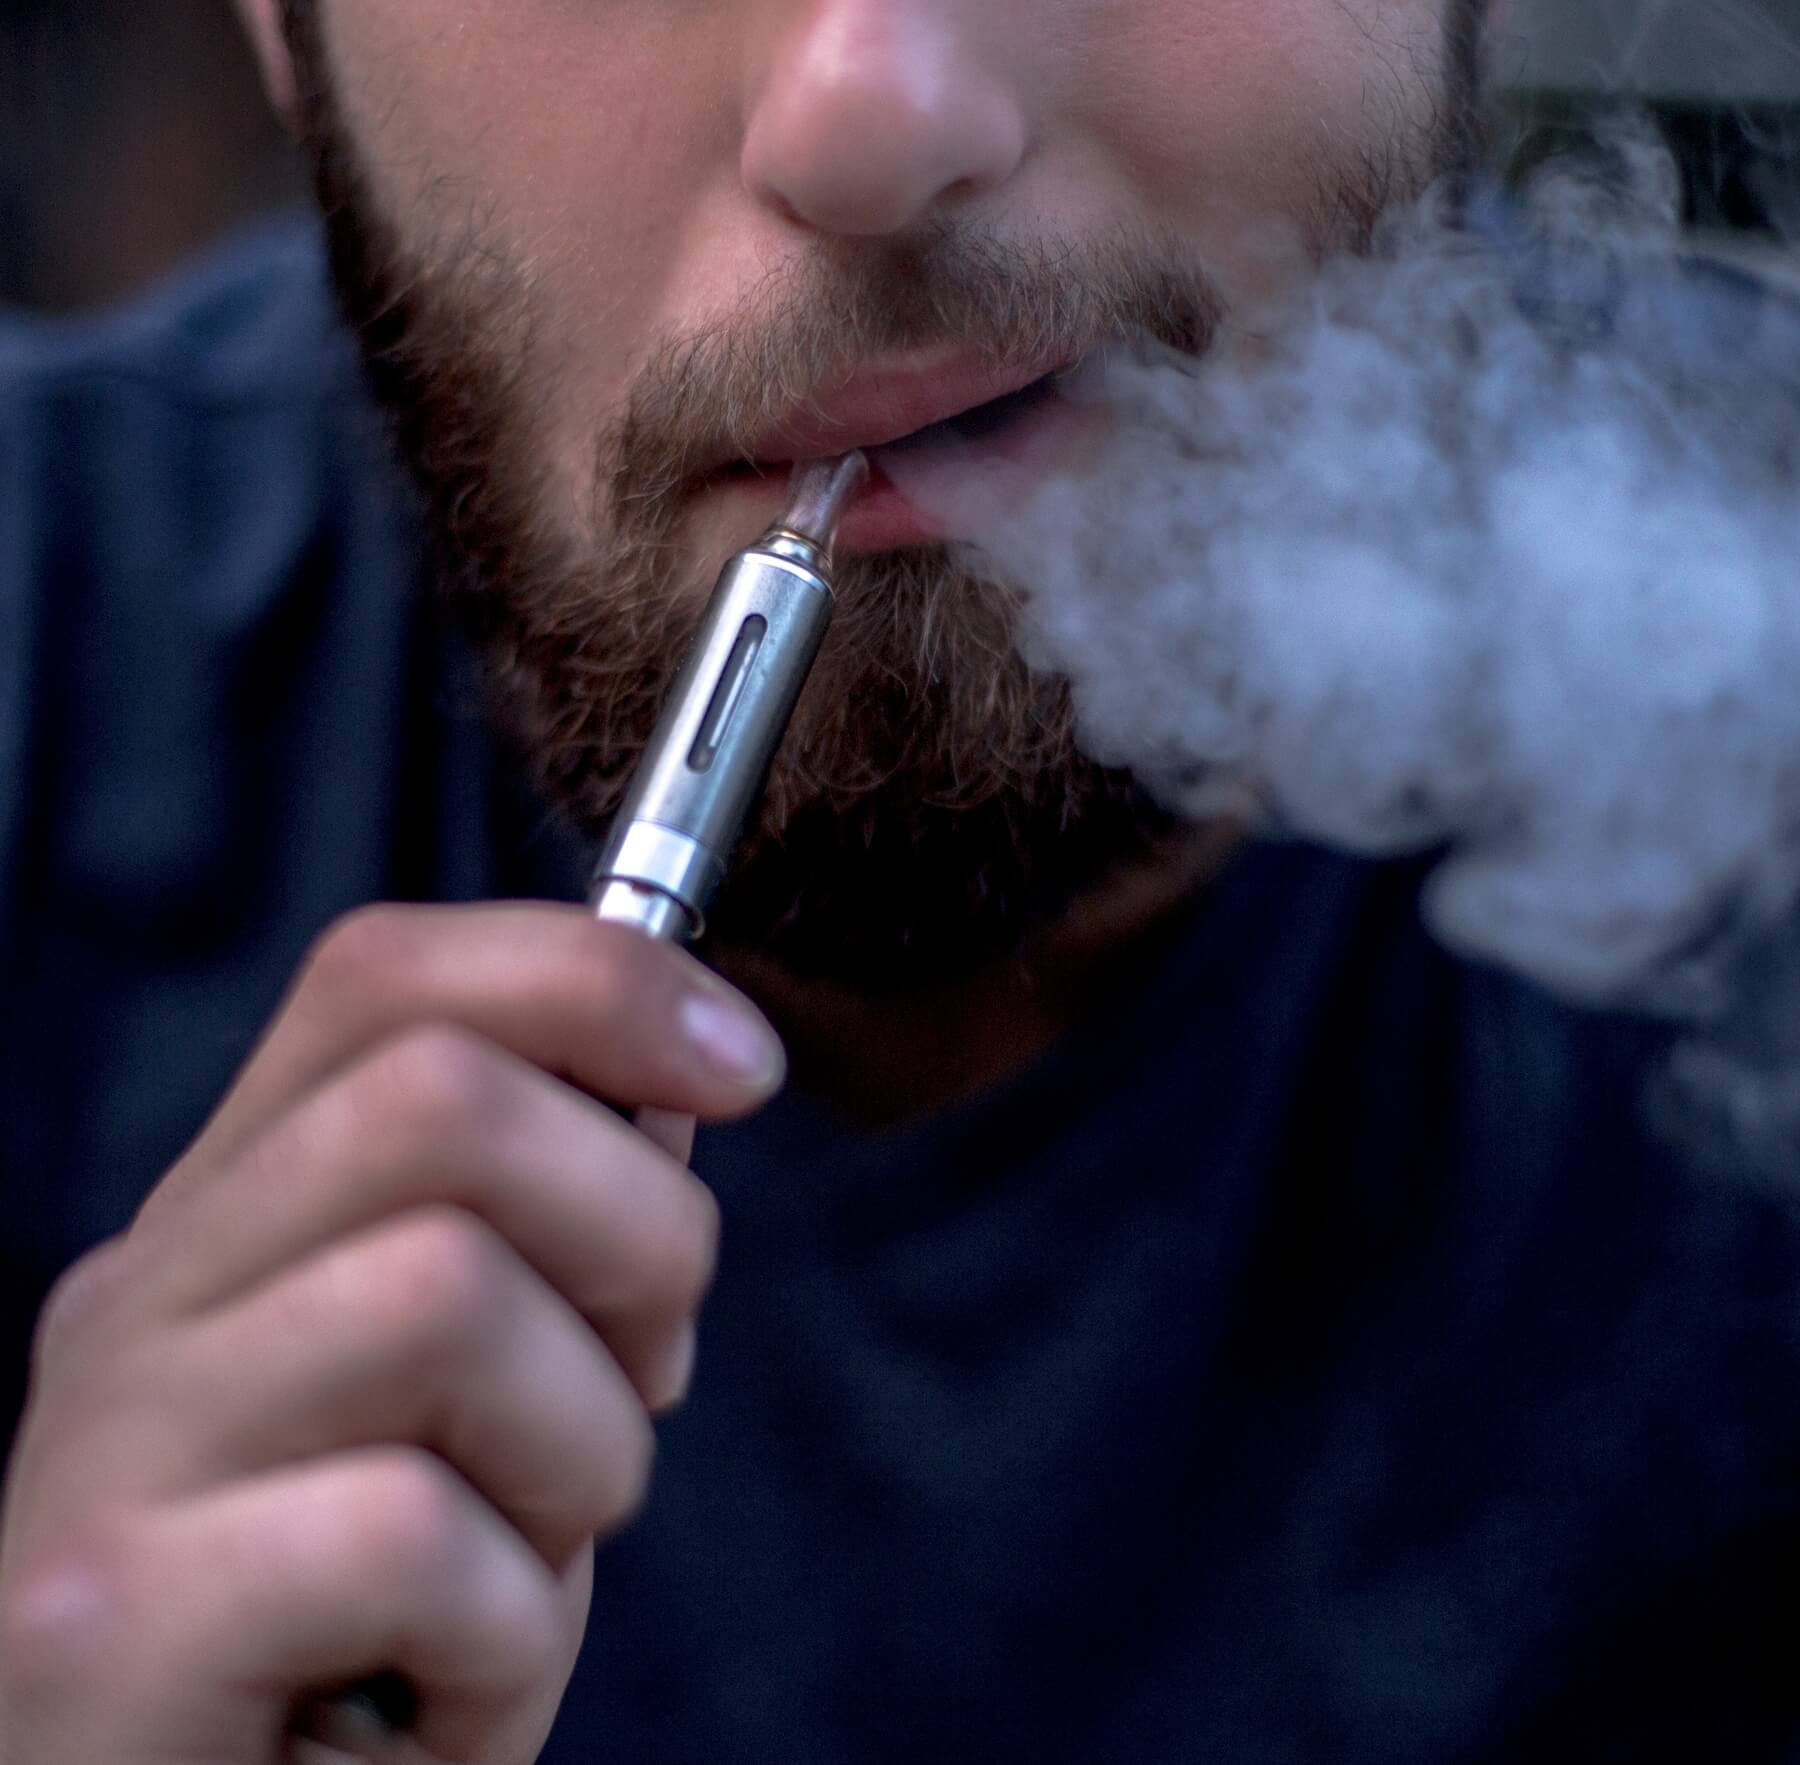 Juul vaping oral health risks